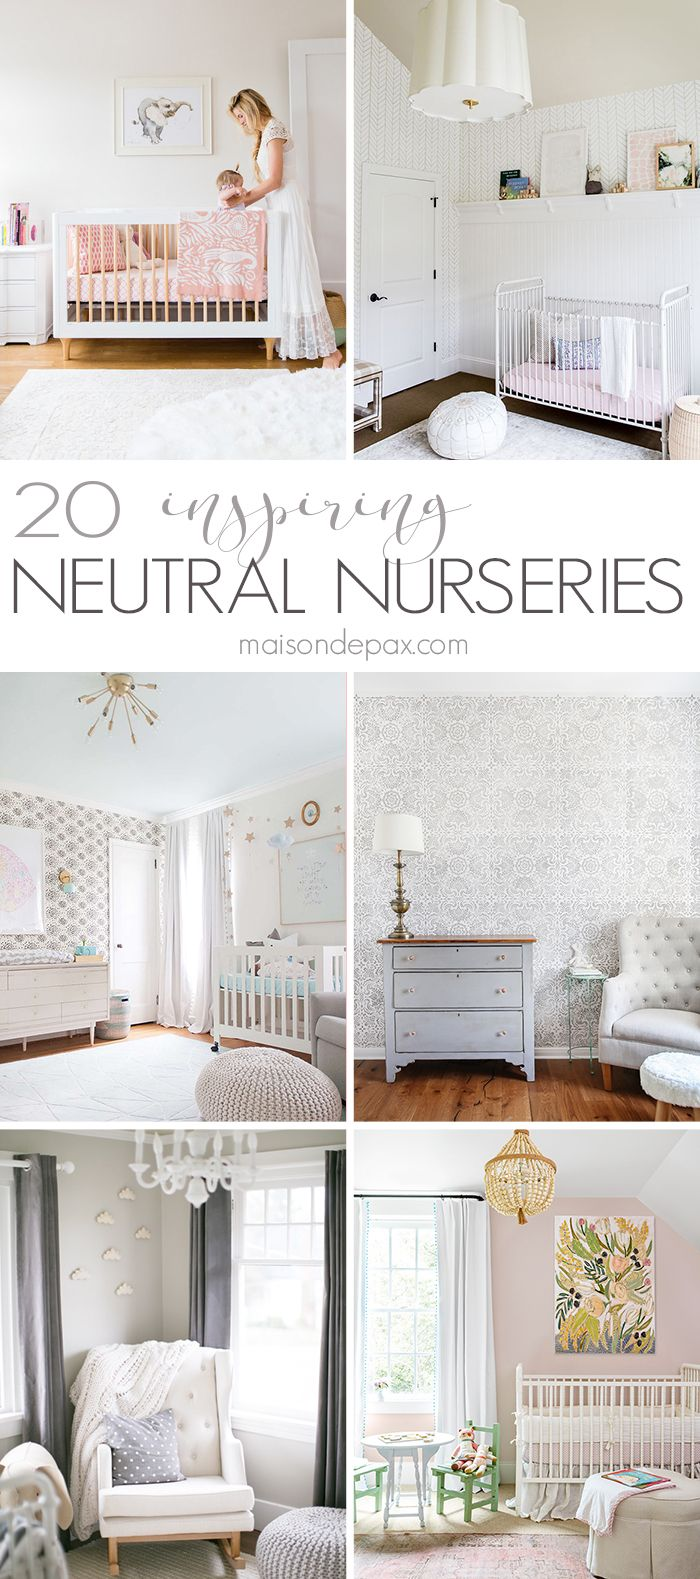 Surprise! Neutral Nursery Decorating Ideas | Neutral nurseries ...